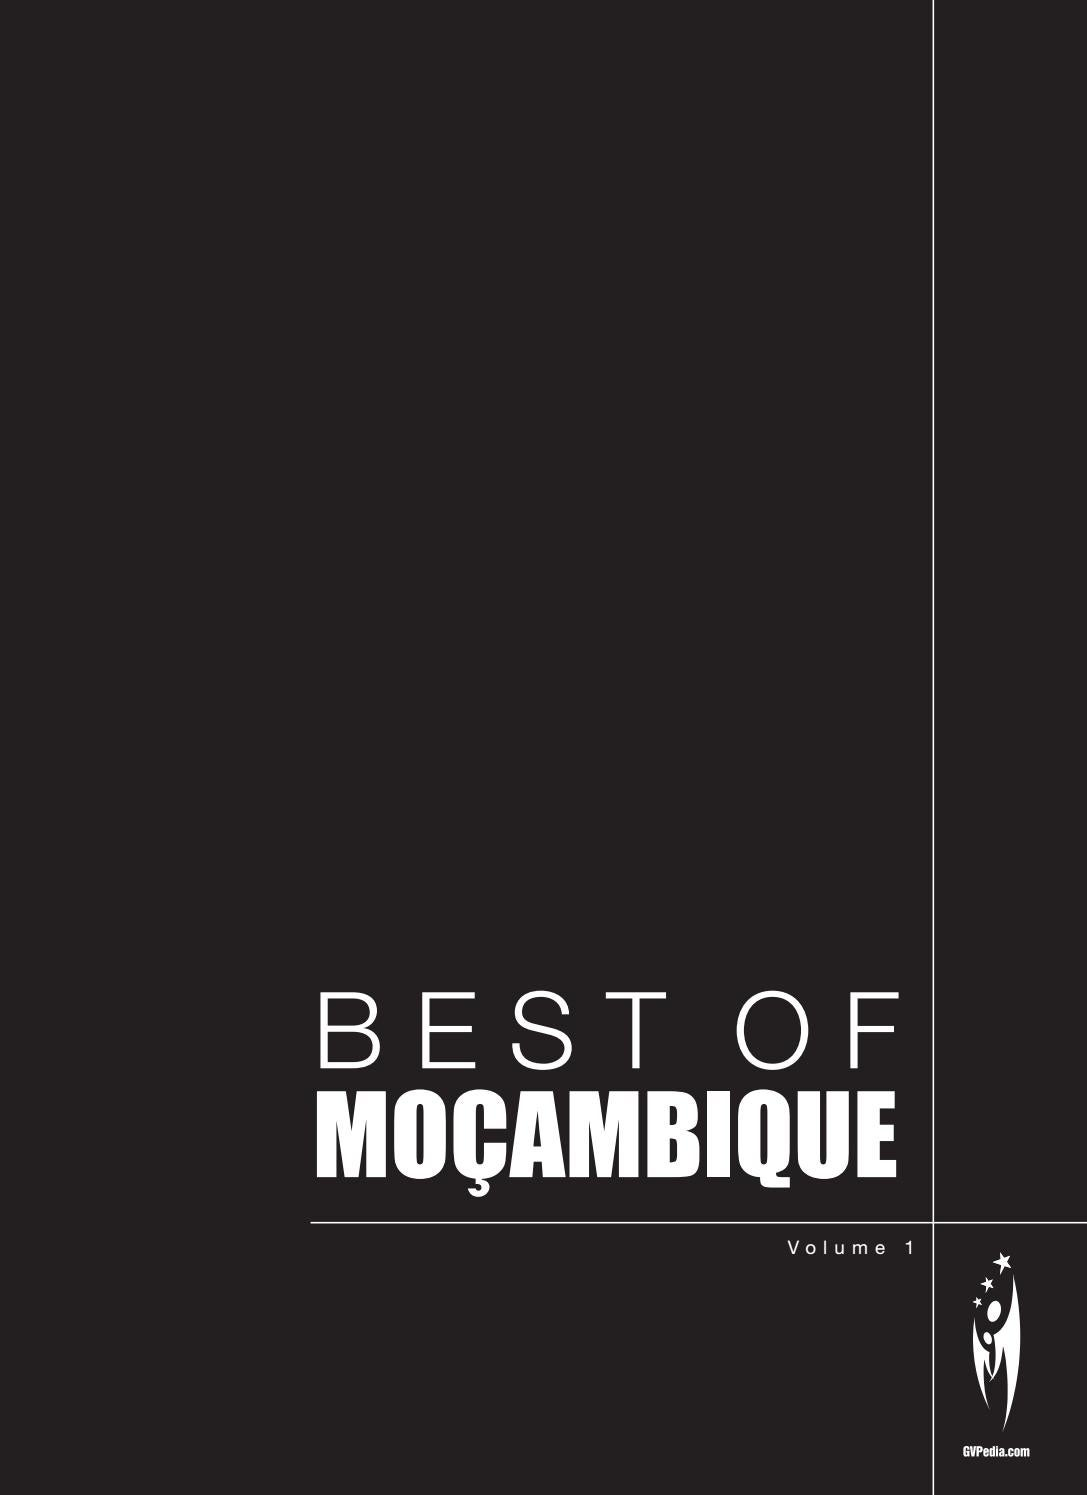 82d897016 BEST OF MOZAMBIQUE - Volume 1 by Sven Boermeester - issuu